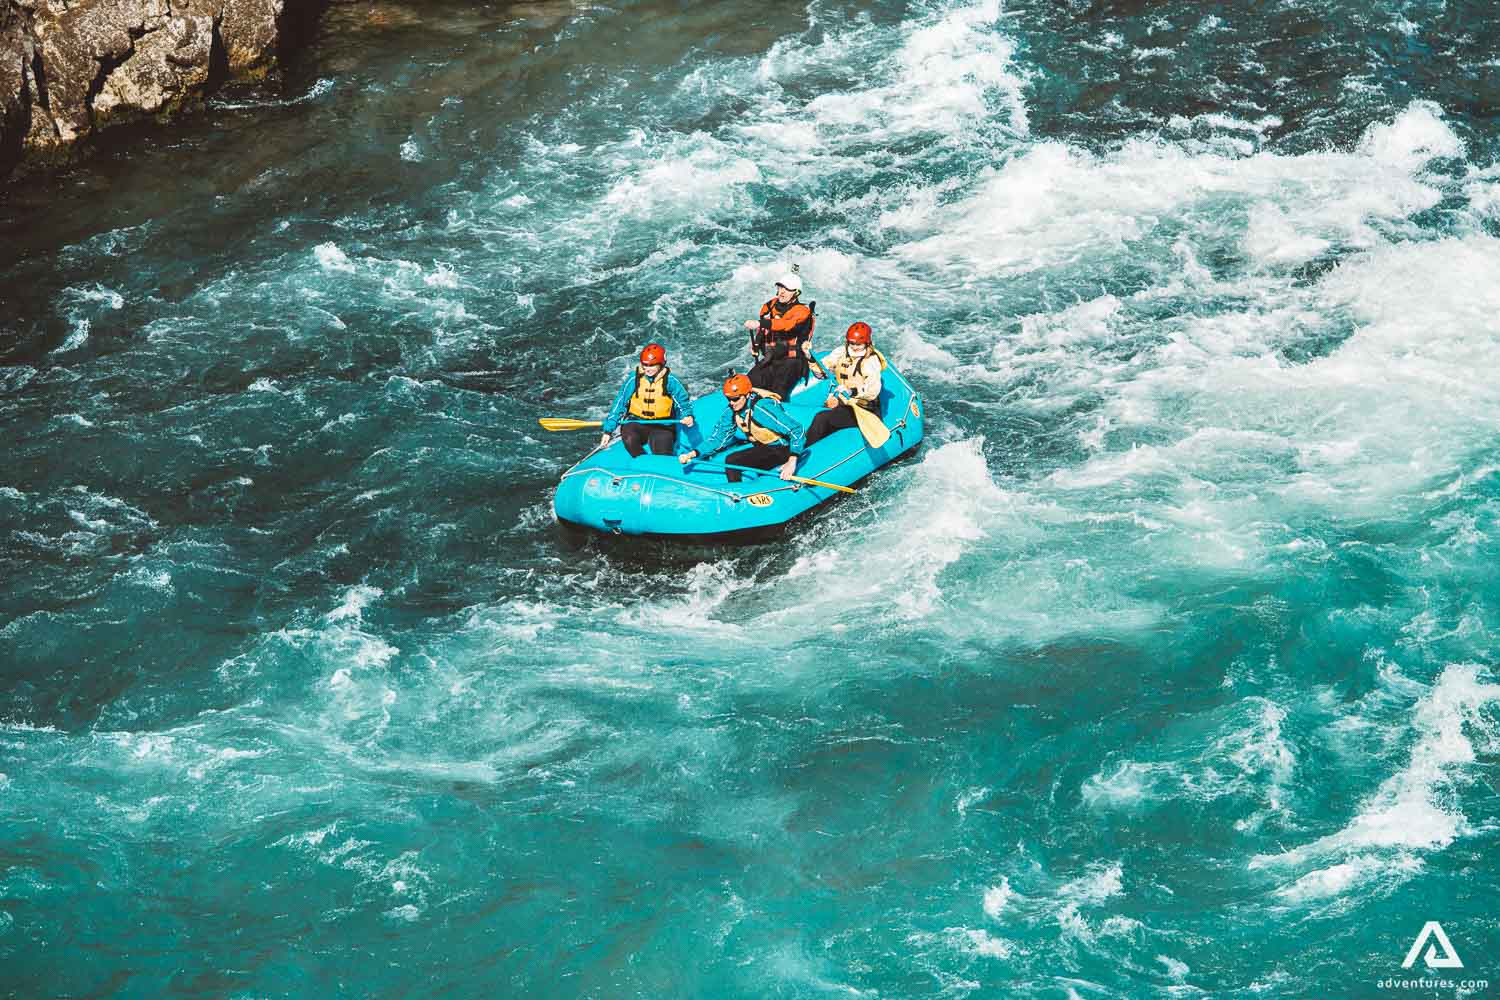 Four People Are Rafting On The River